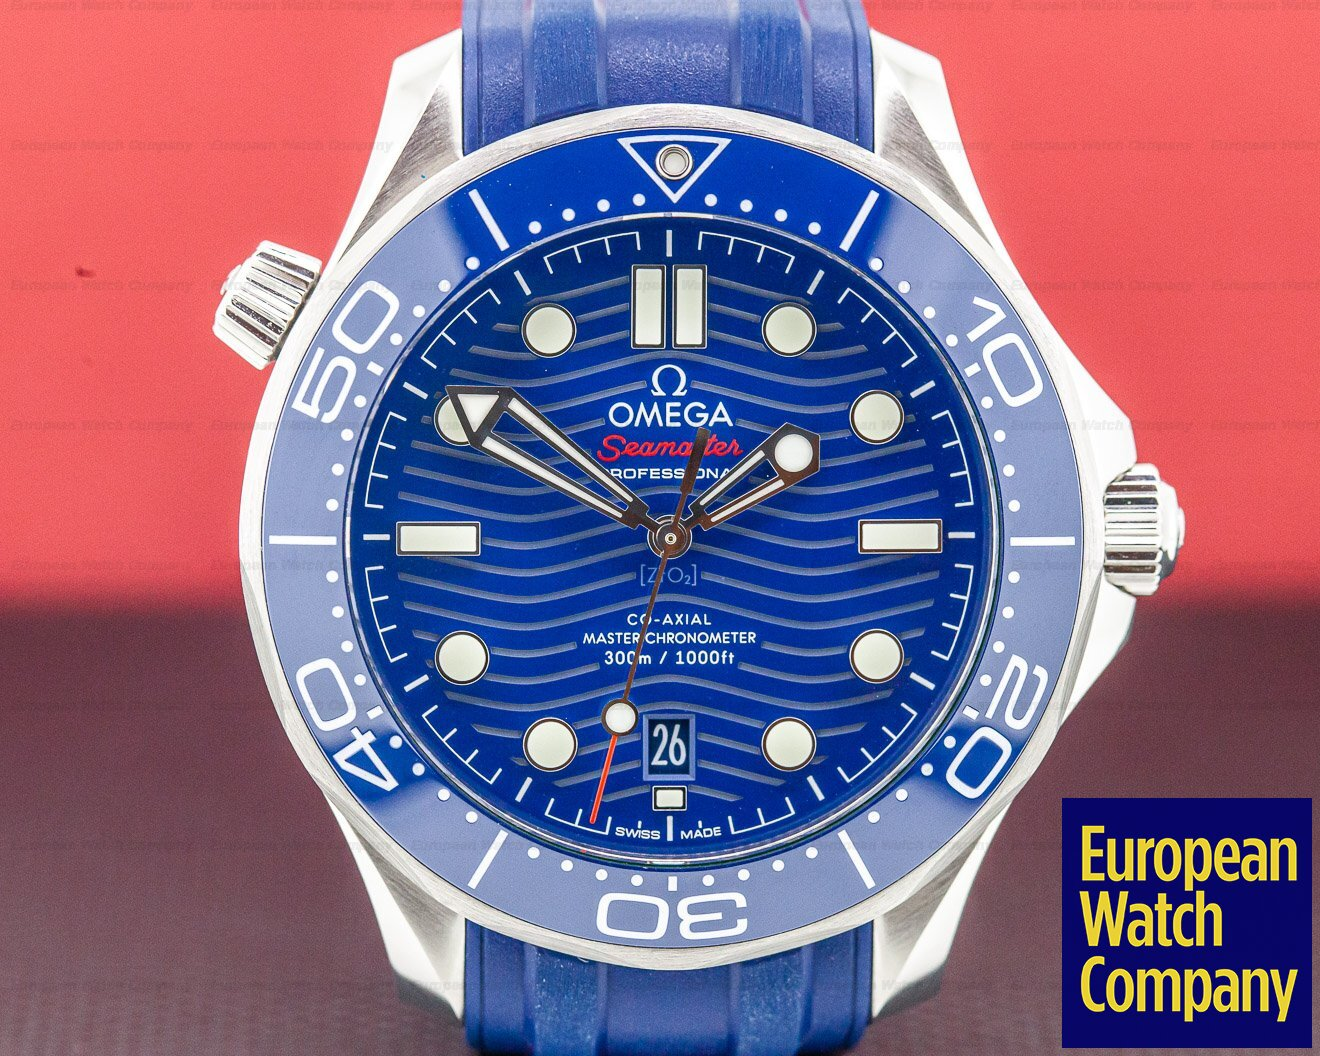 Omega 210.32.42.20.03.001 Seamaster Diver 300M Co-Axial Master Chronometer 42MM